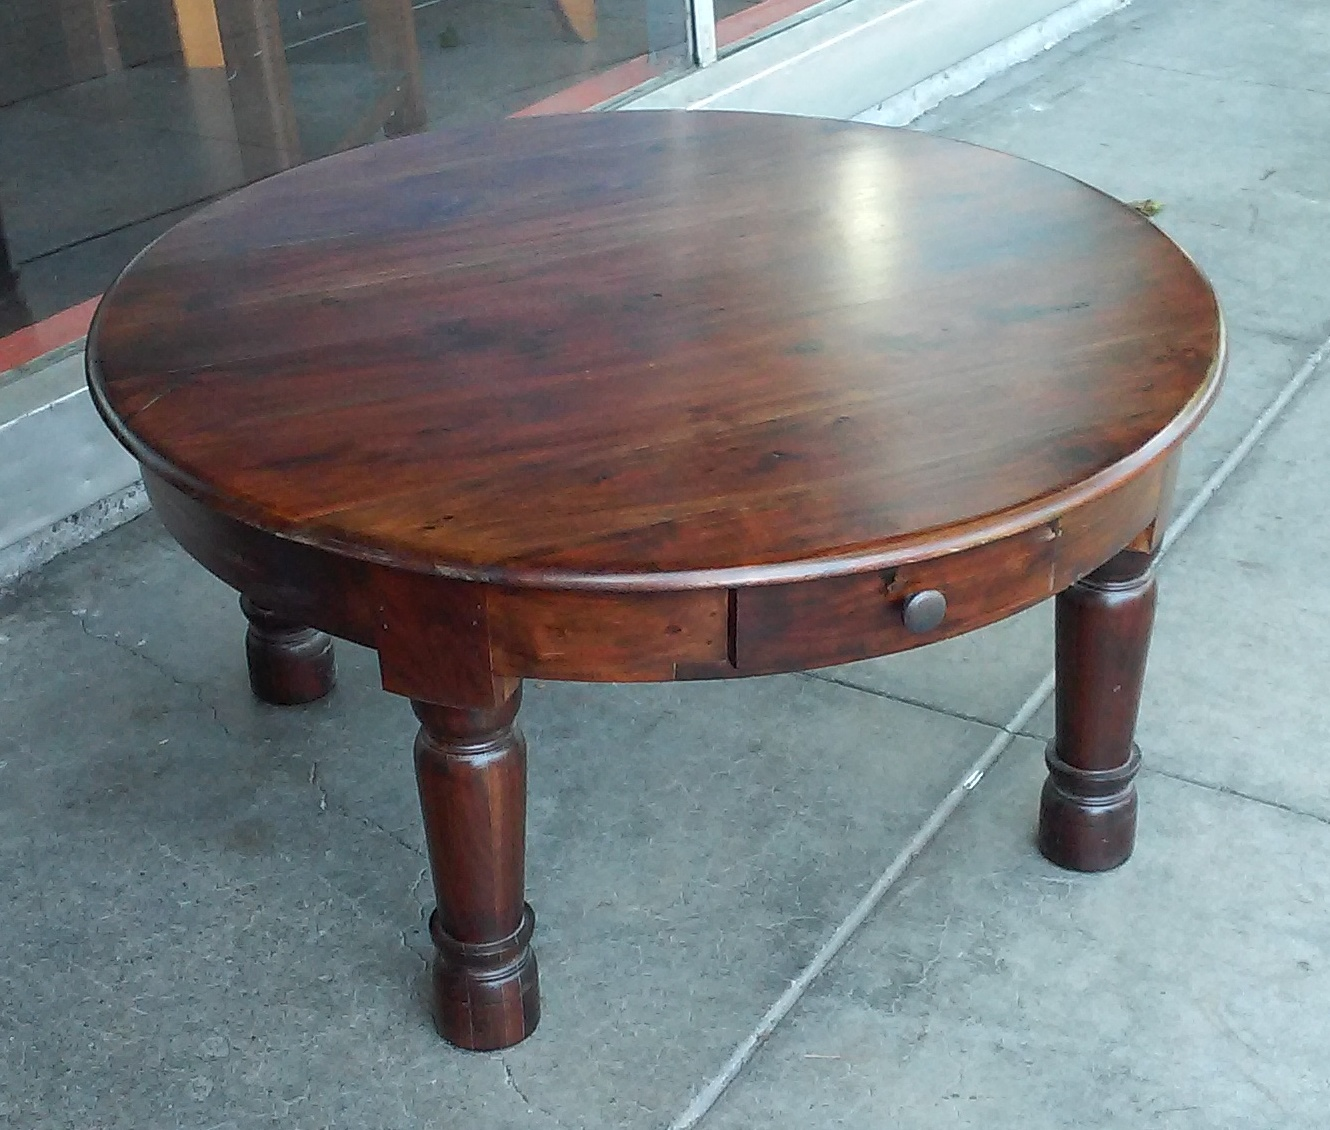 Teak Coffee Table South Africa: UHURU FURNITURE & COLLECTIBLES: SOLD